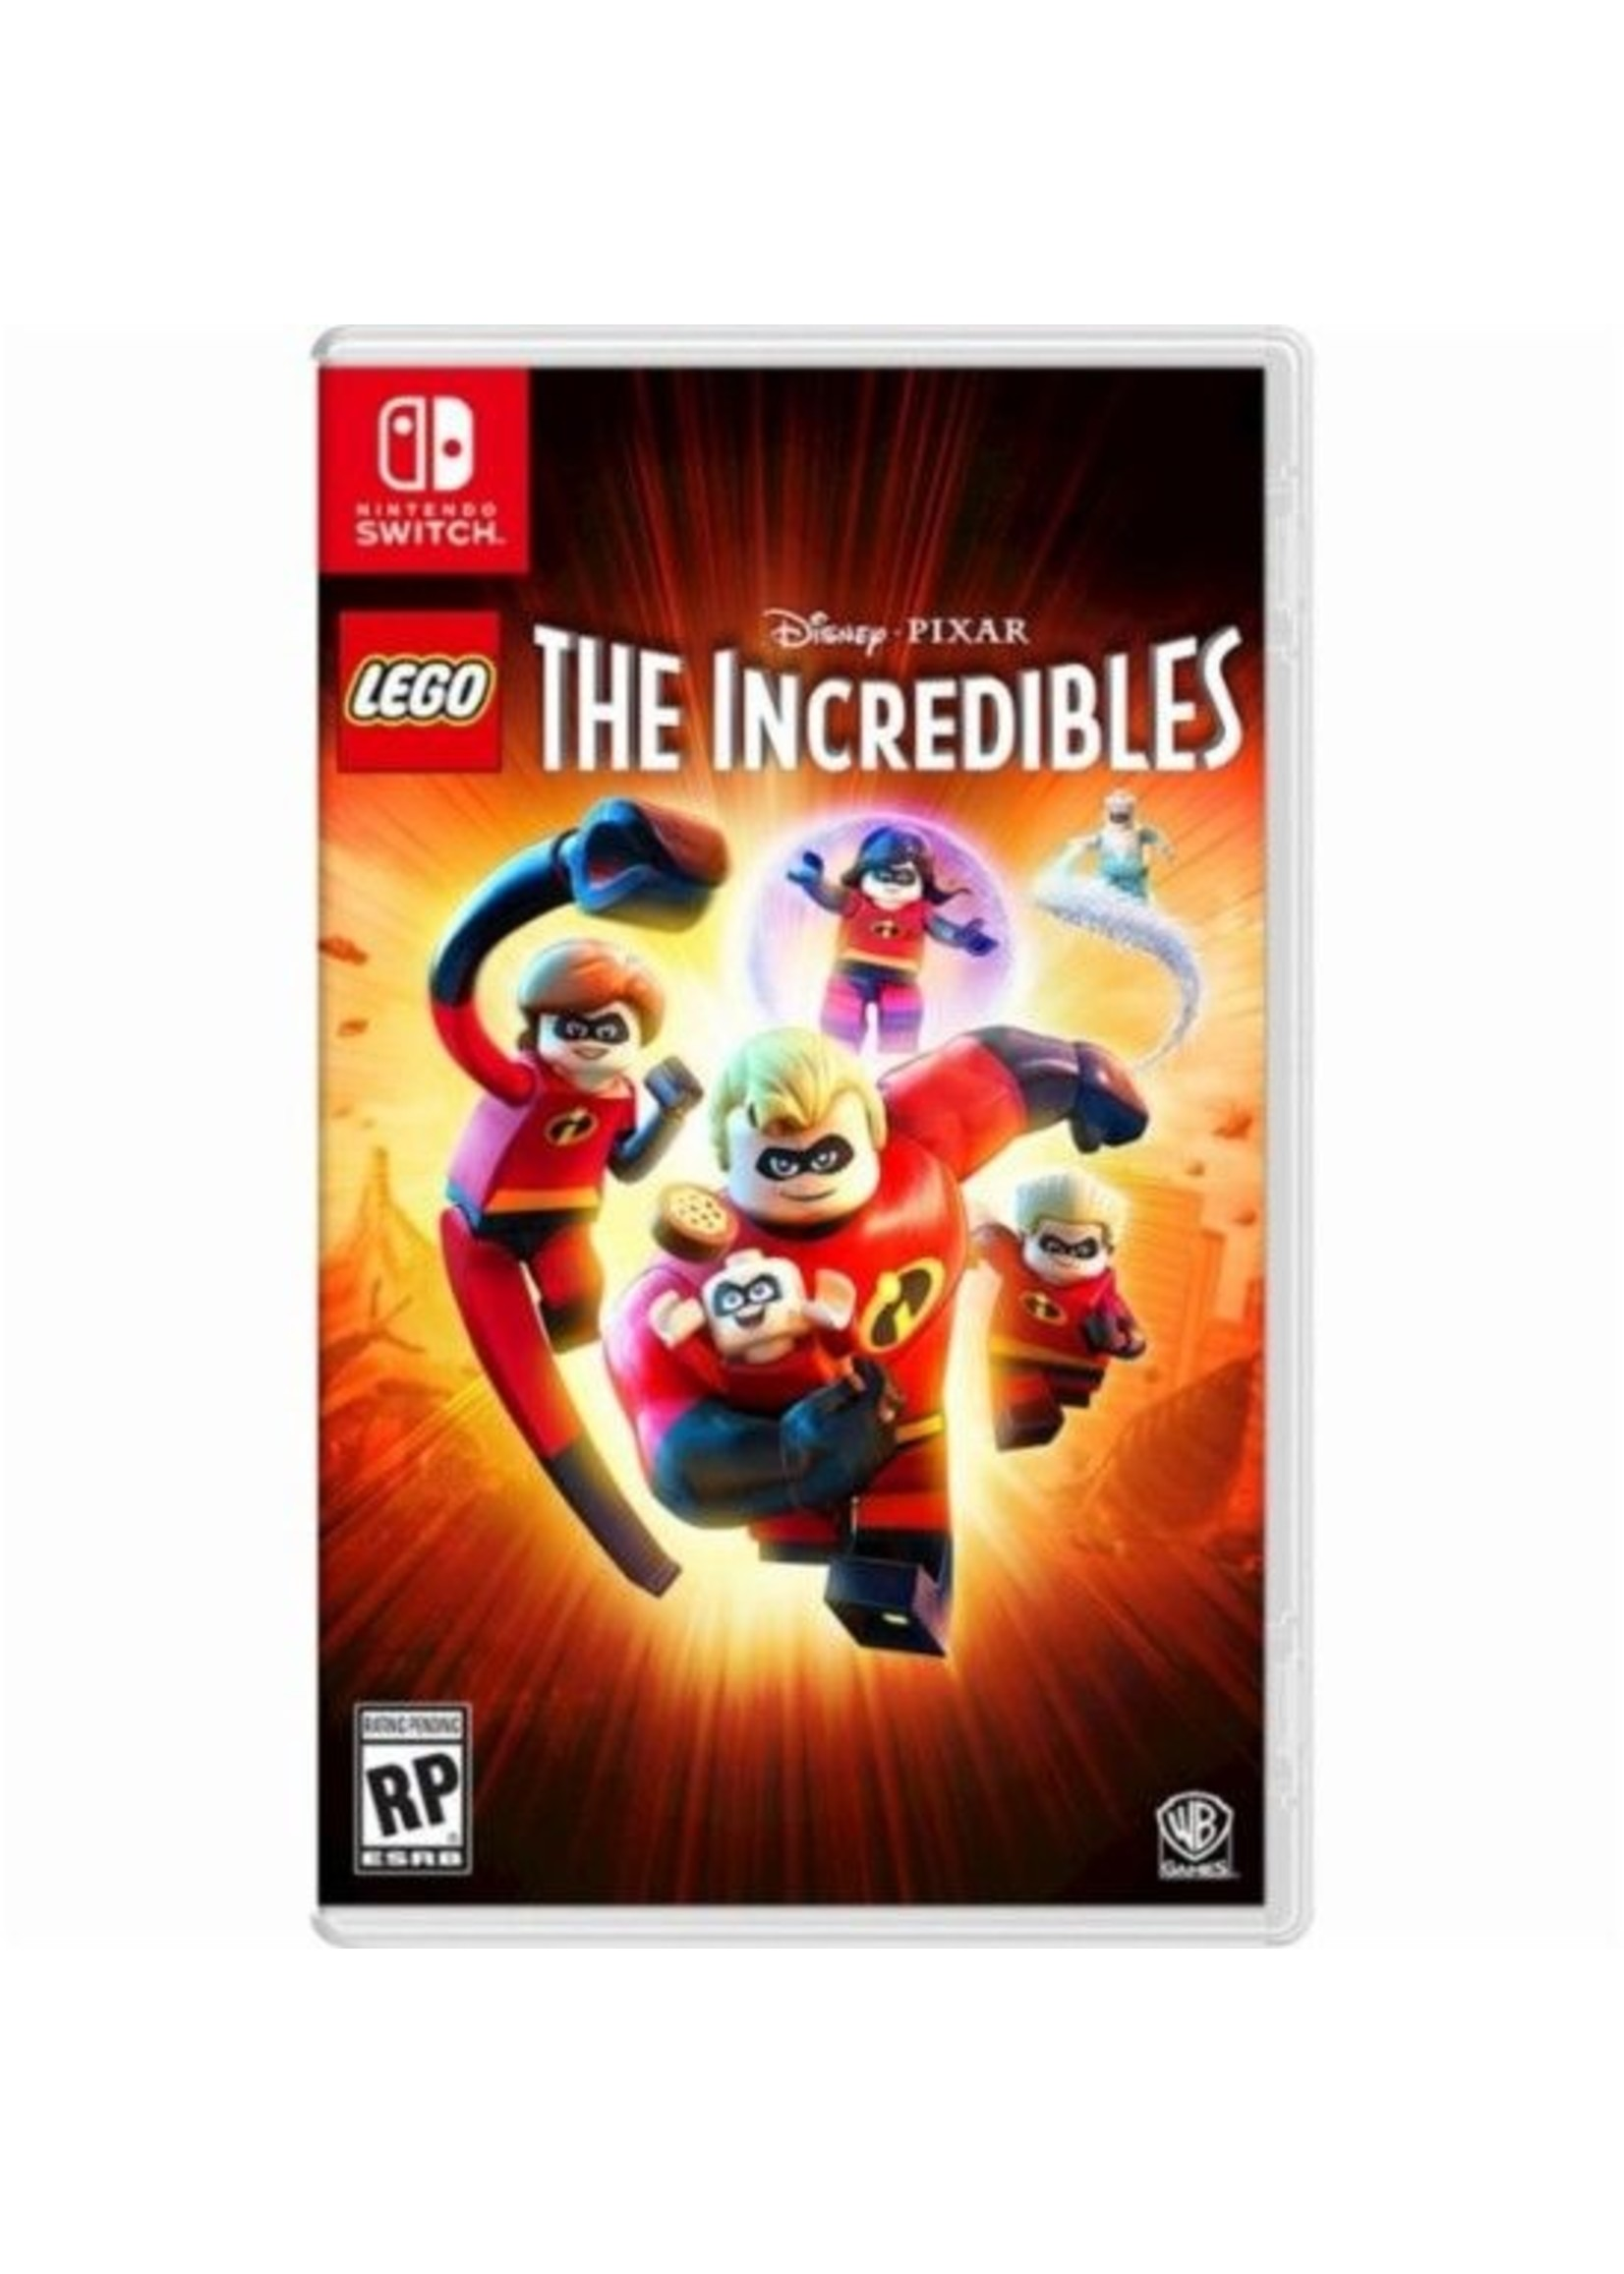 LEGO The Incredibles - SWITCH prePlayed